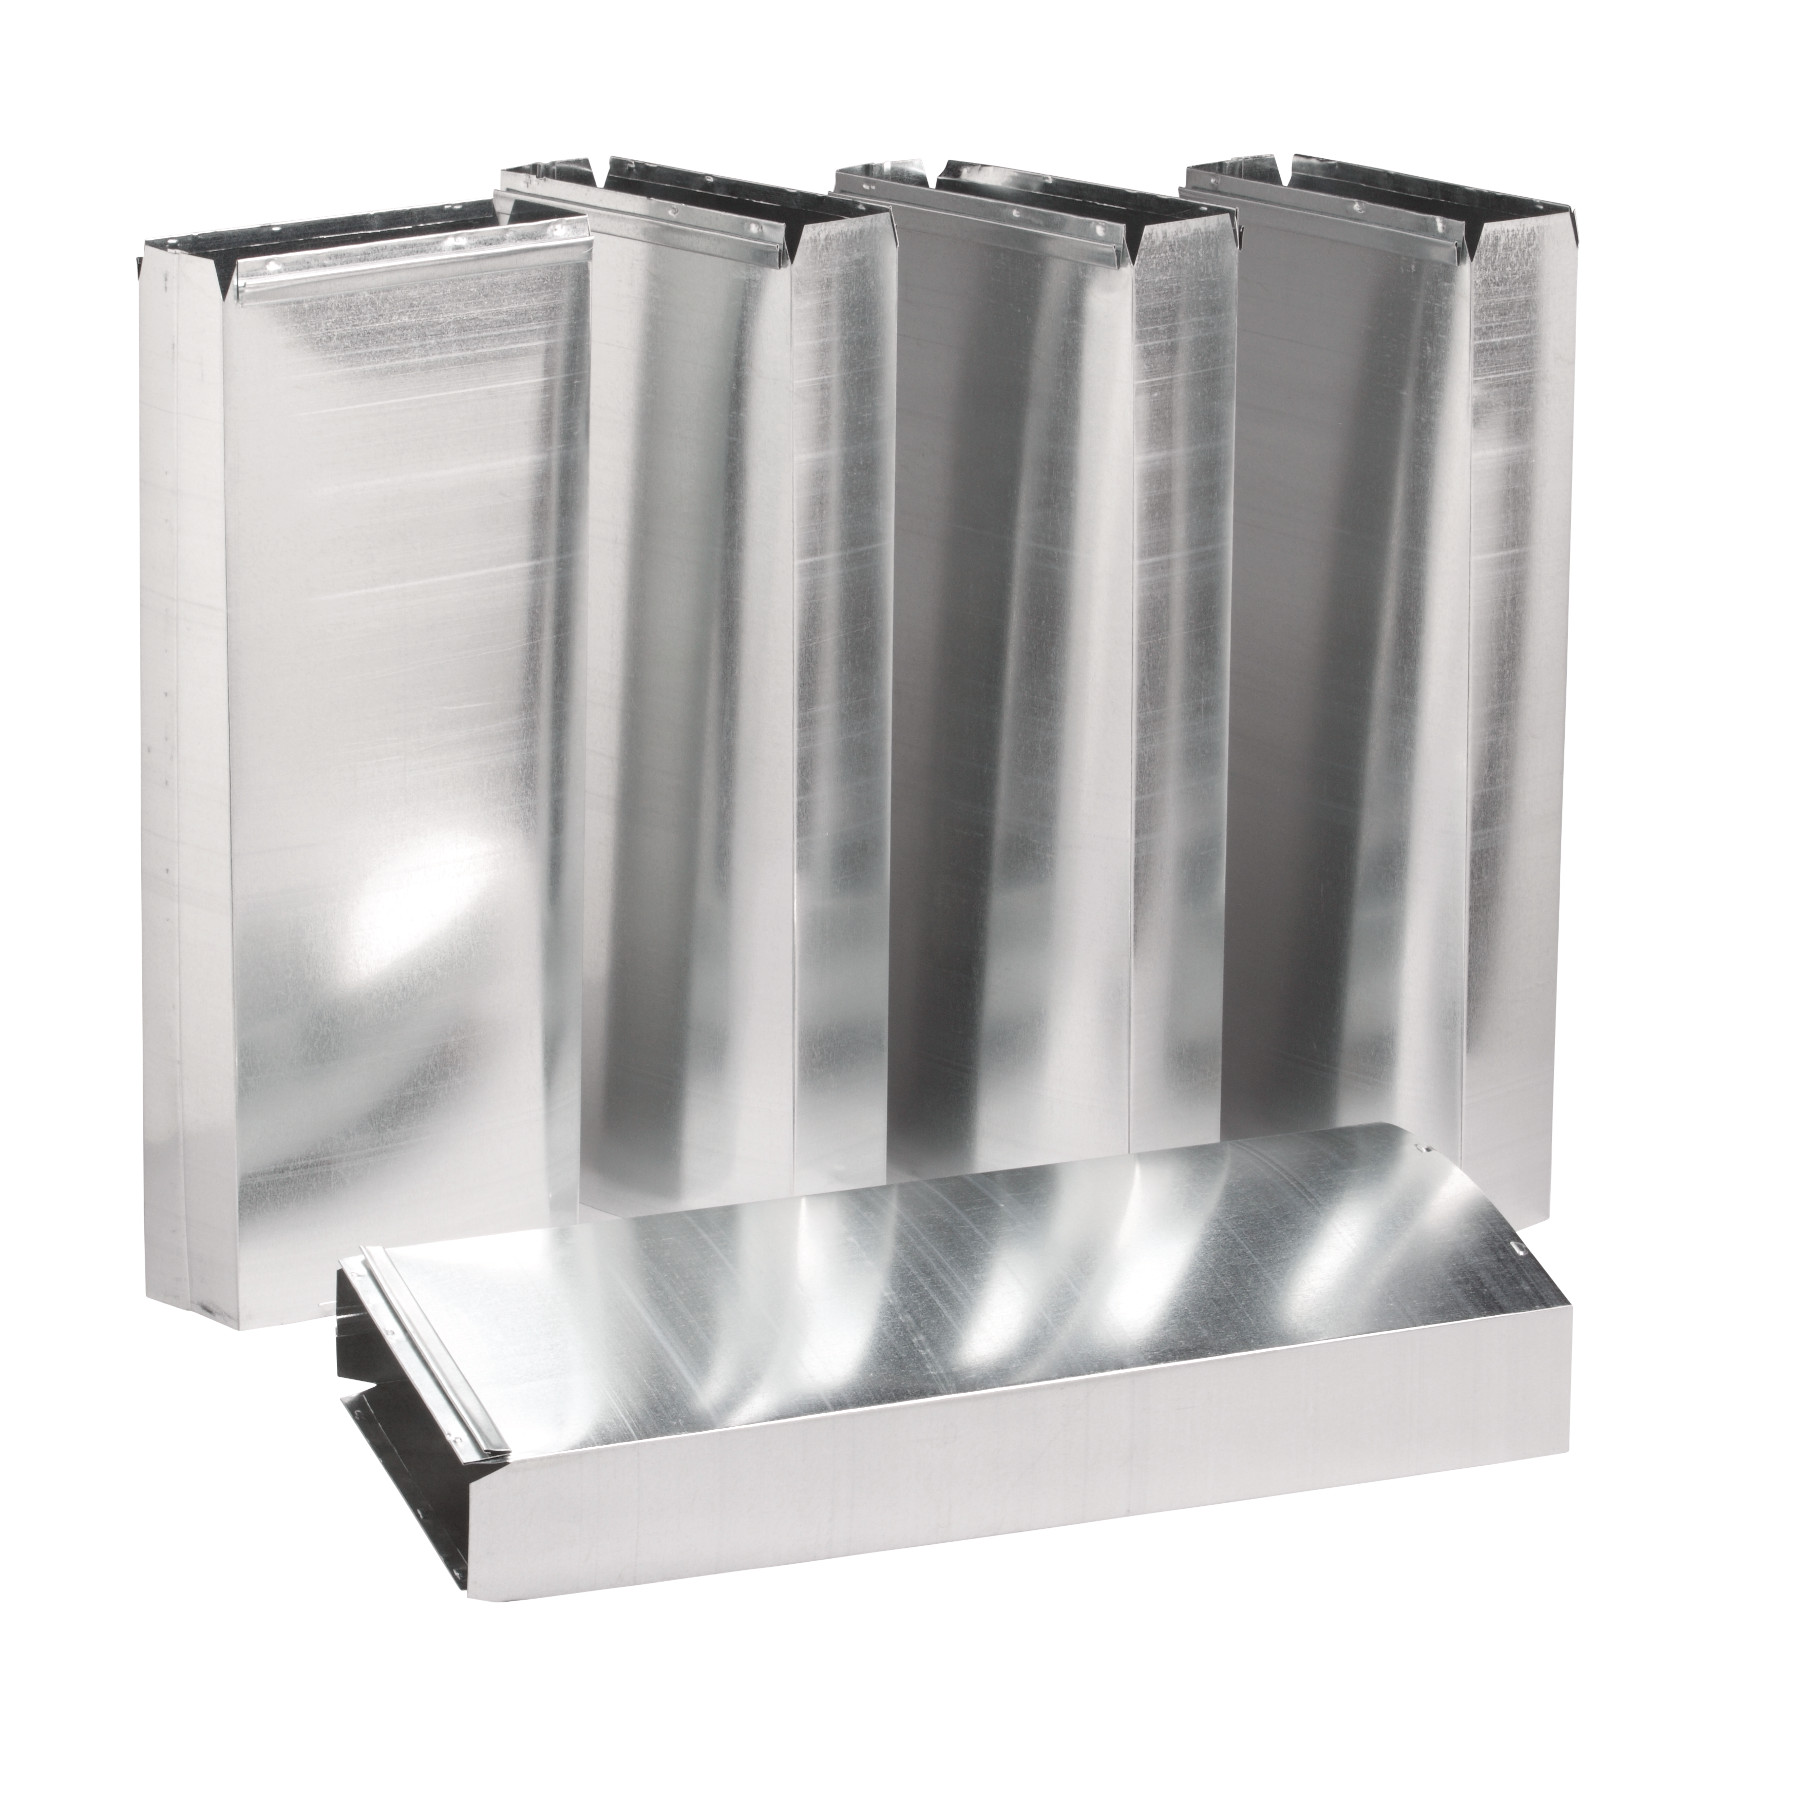 3-1/4-Inch x 10-Inch Duct Sections for Range Hoods and Bath Ventilation Fans